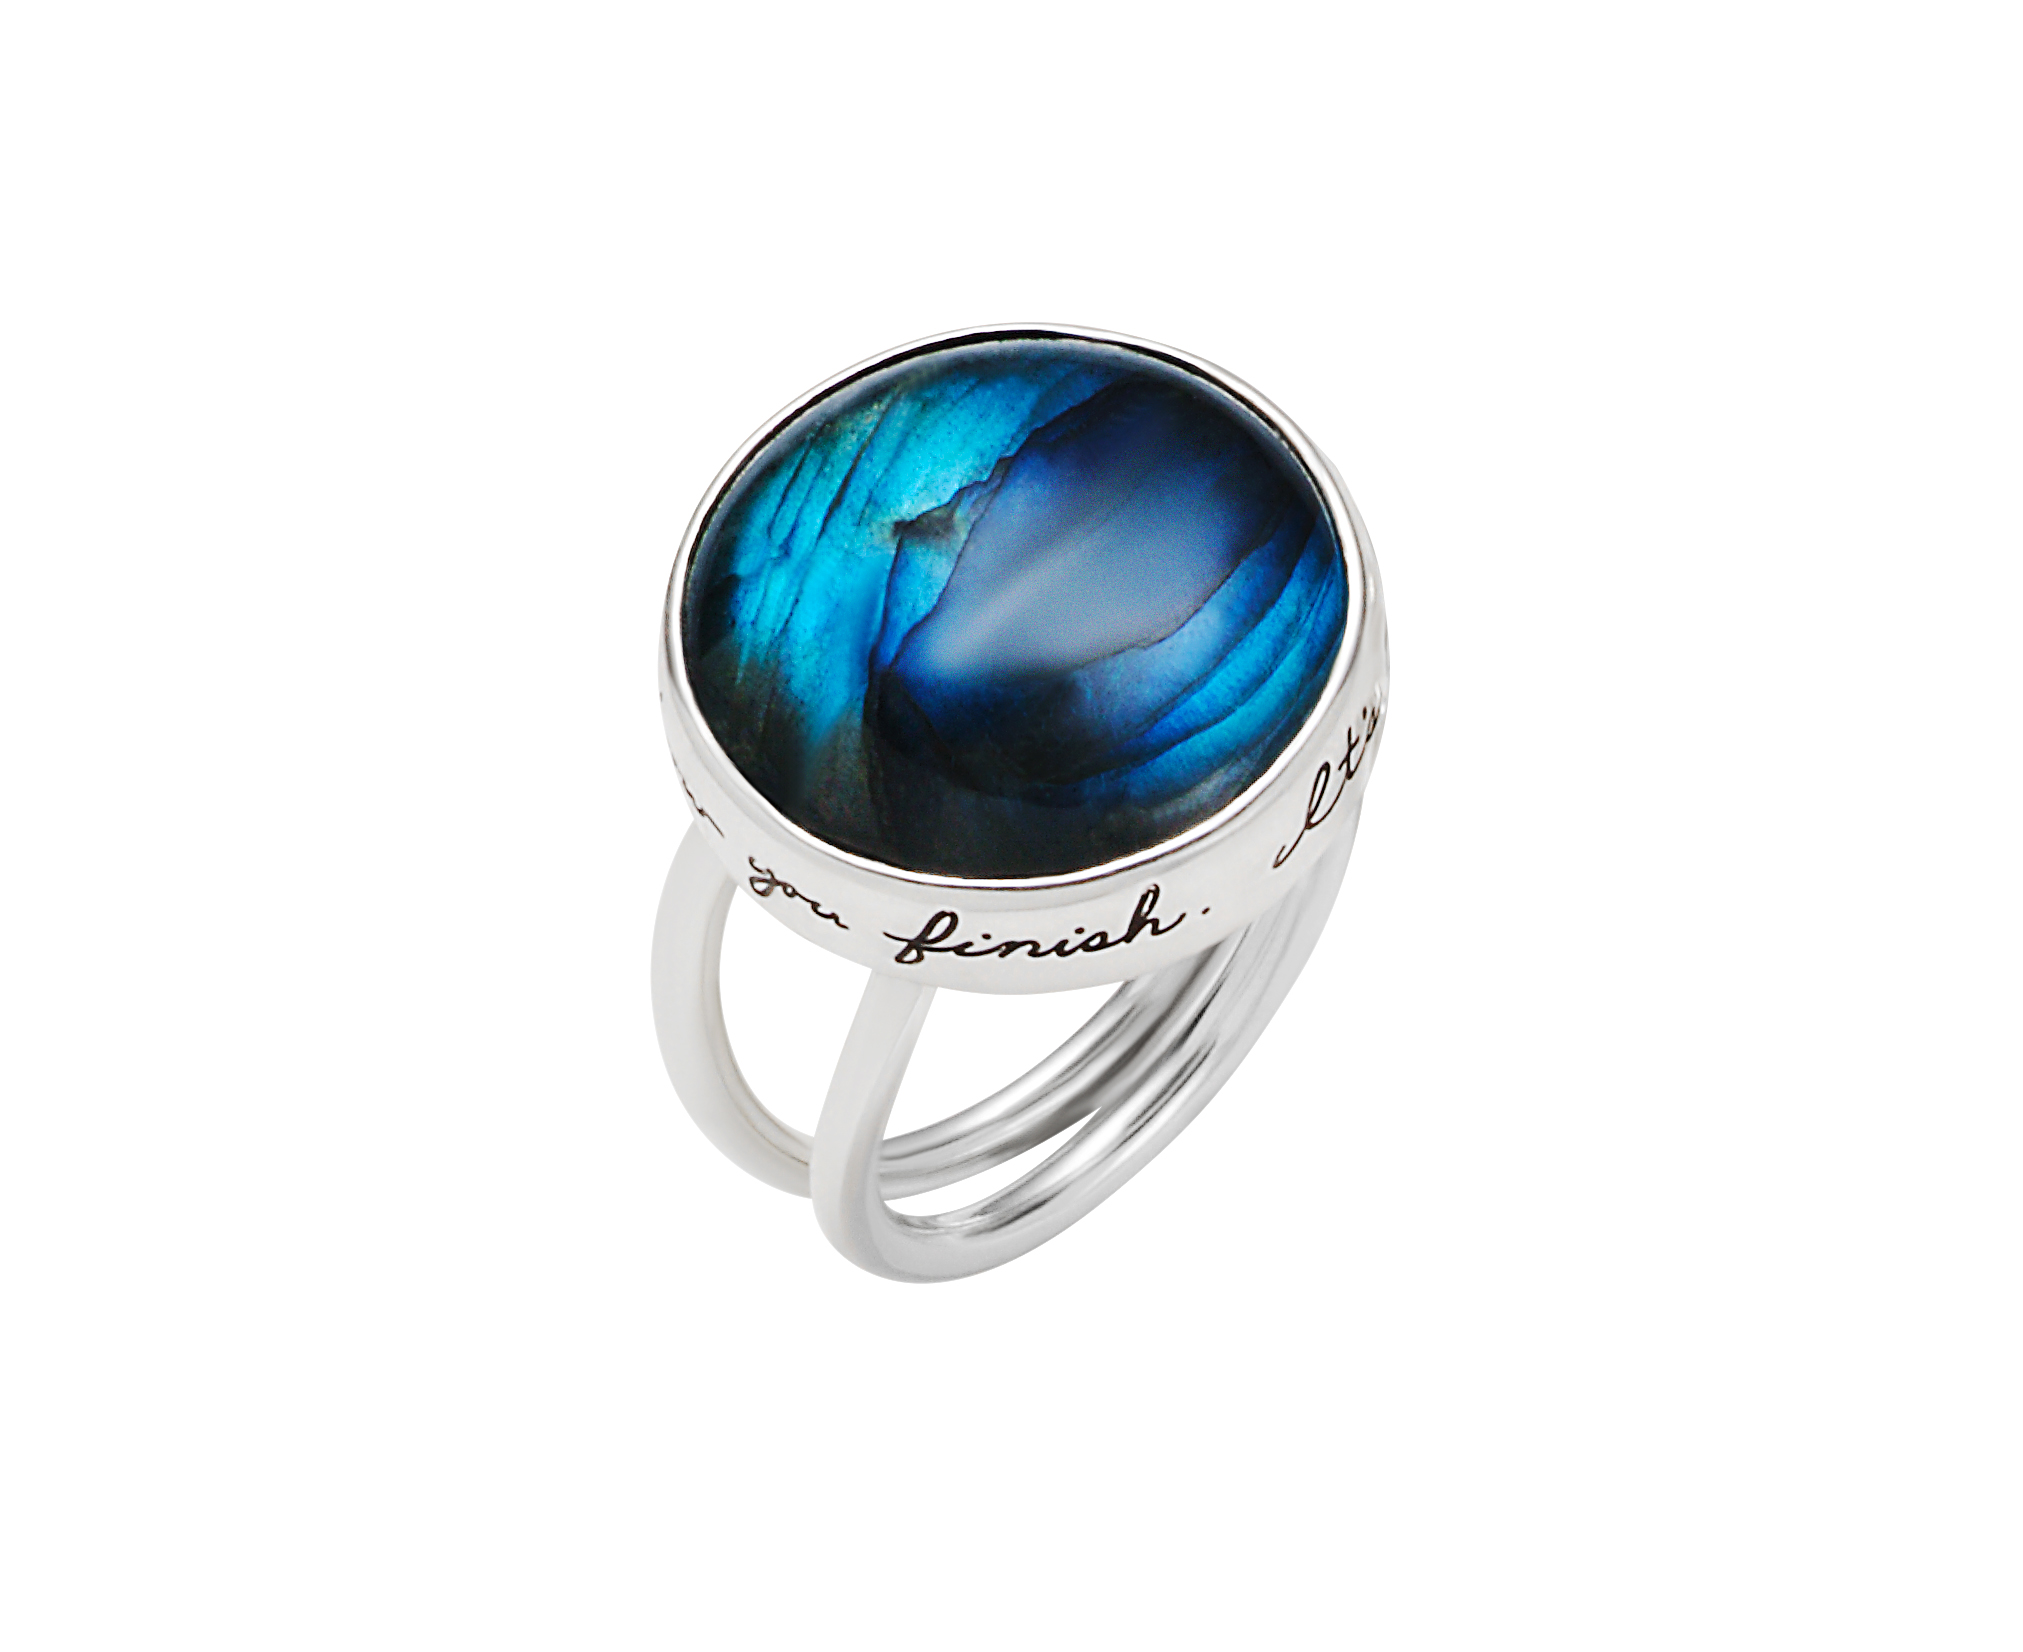 Sterling silver bouble wire band ring with a 18mm Cabochon Labradorite on top Inspirational message engraved around stone reads:  It's not where you start, it's how you finish.